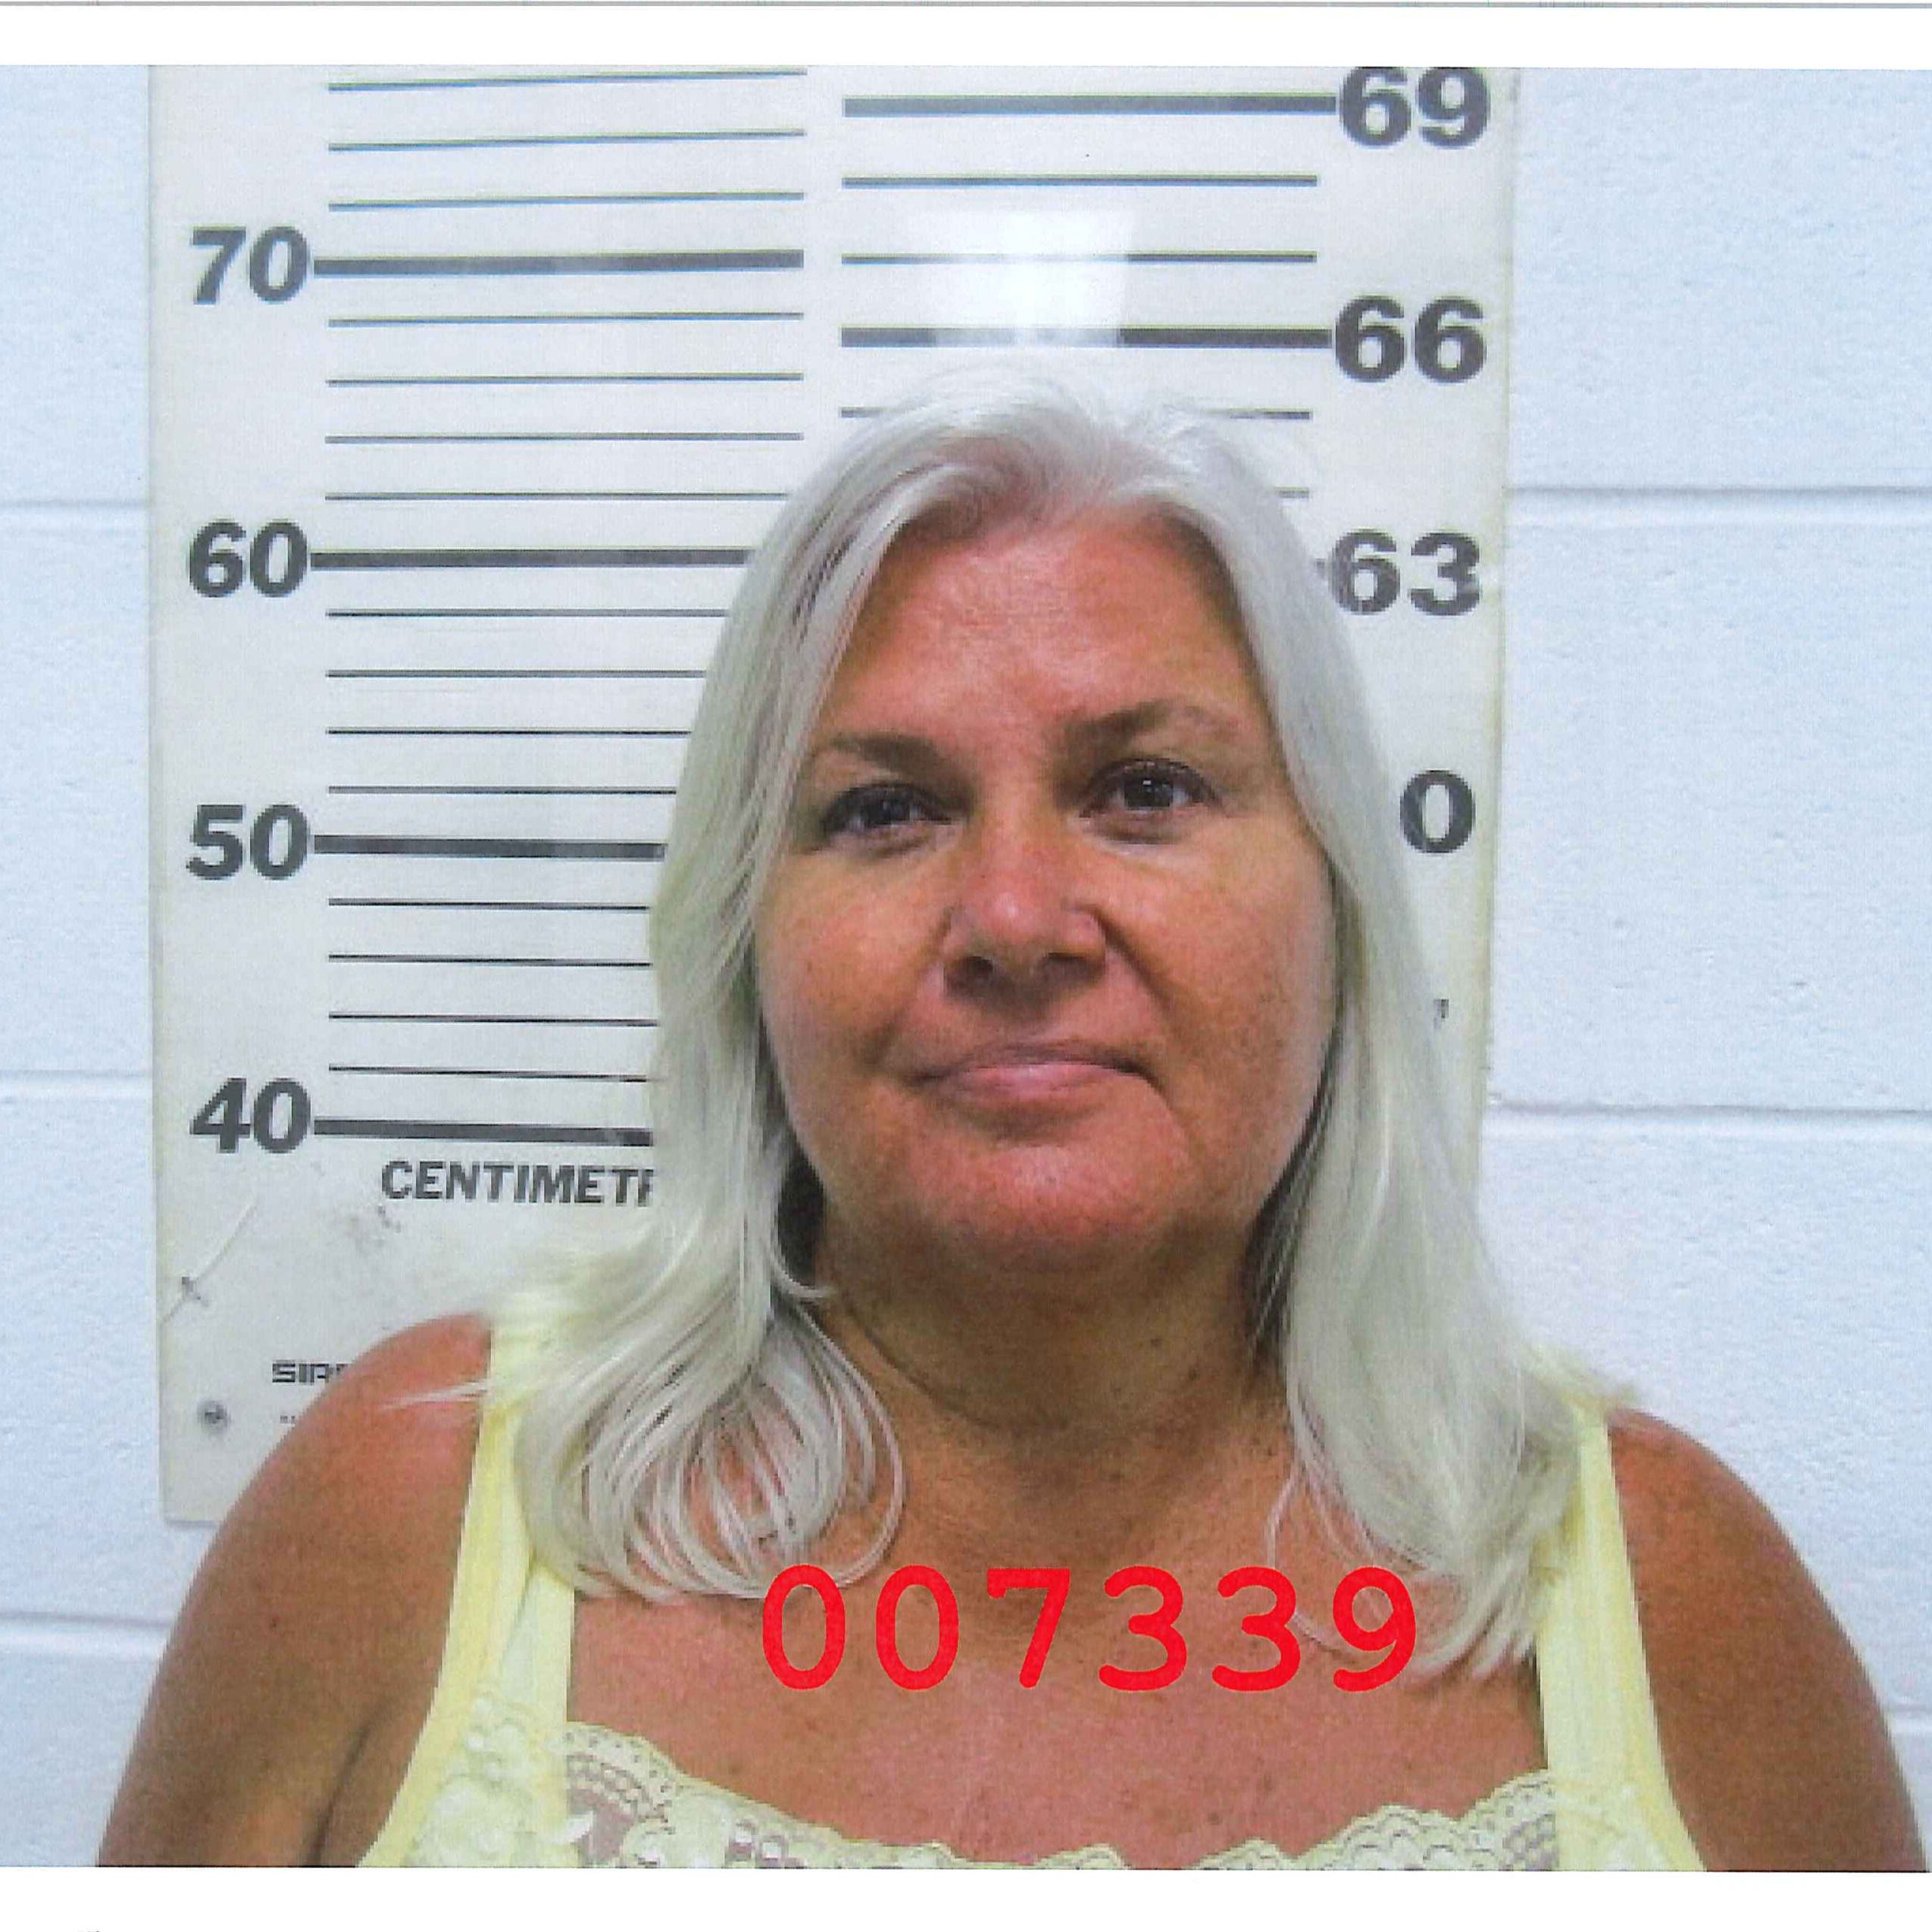 Facing death penalty in Lee County, Lois Riess hit by first-degree murder charge in Minnesota